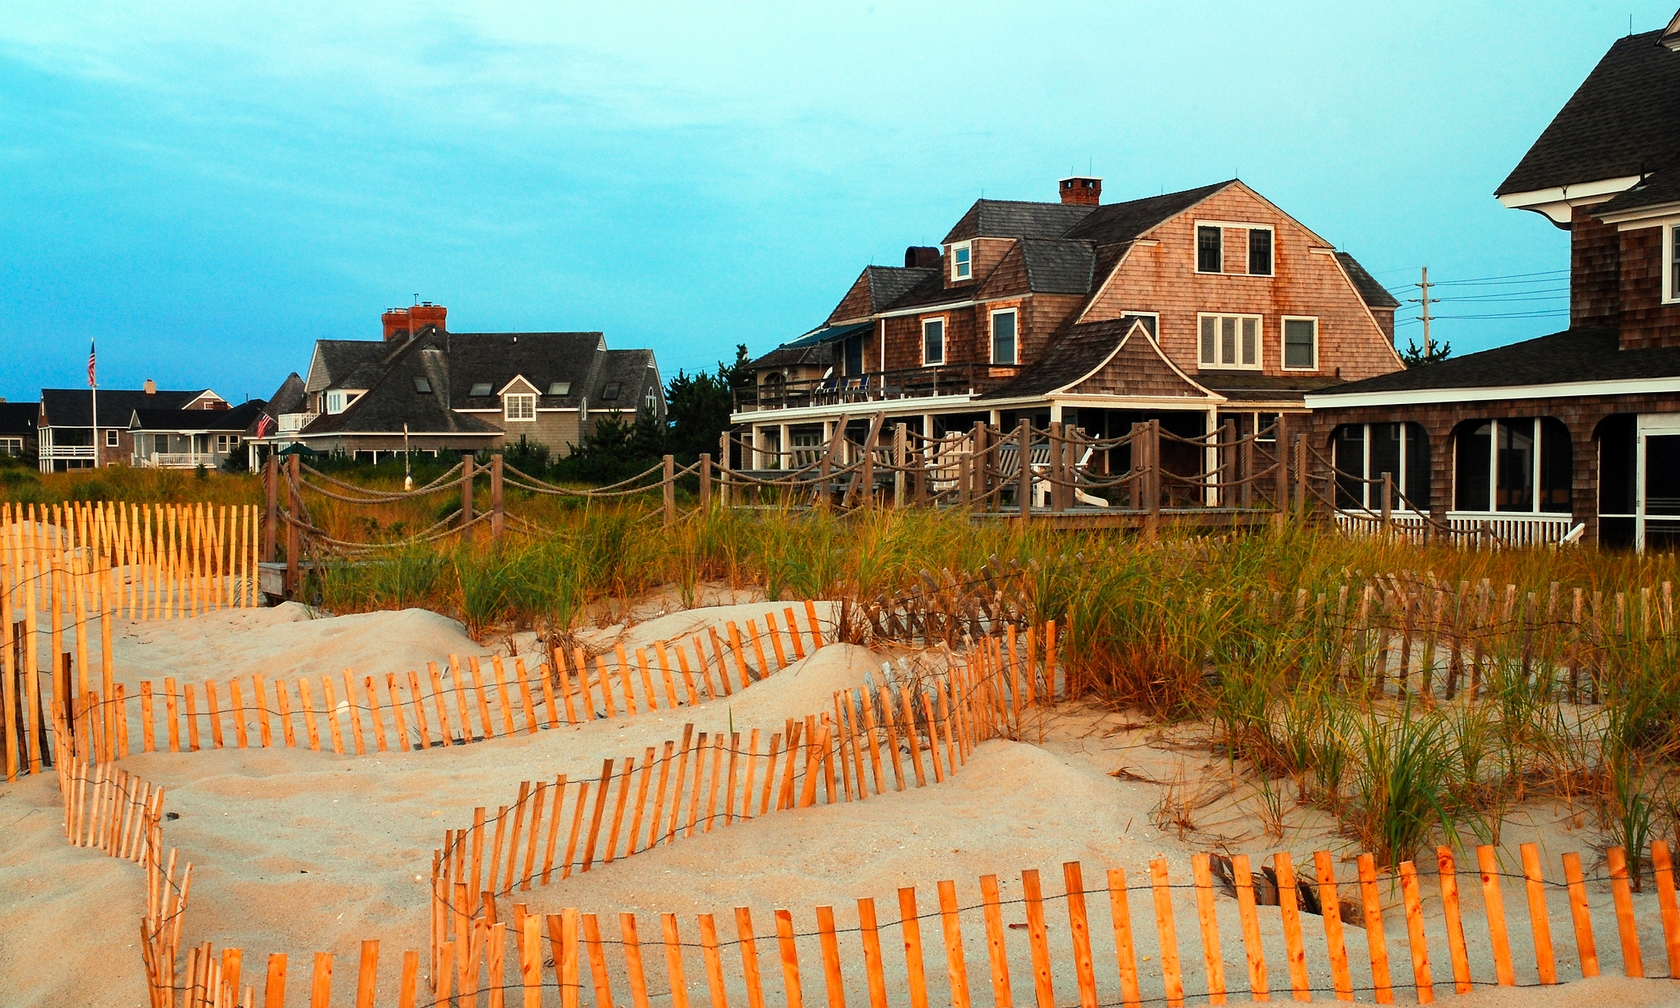 Vacation rental beach houses in the Jersey Shore